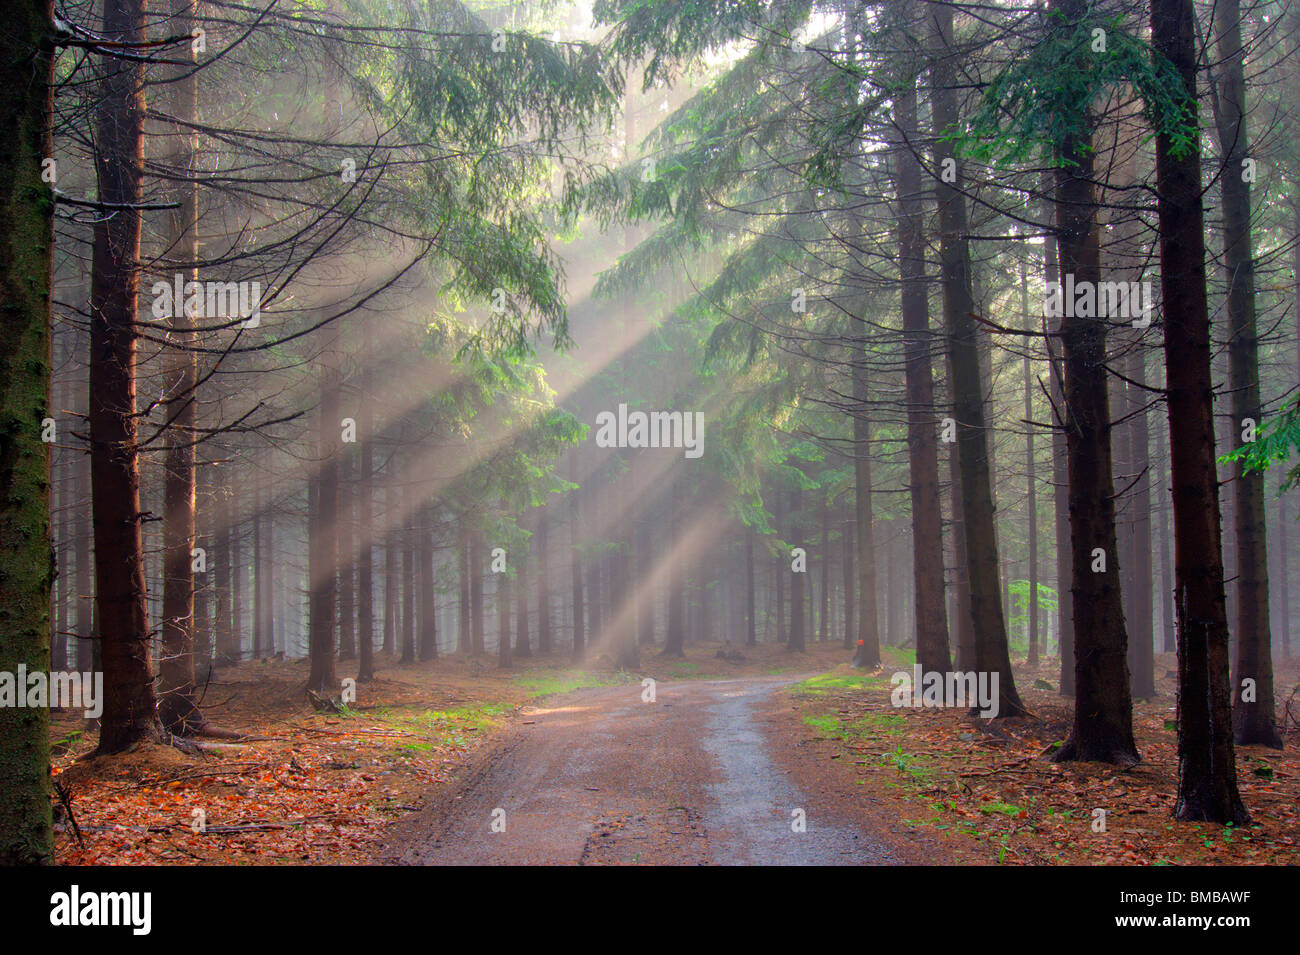 God beams - spruce forest in the early morning mist - Stock Image